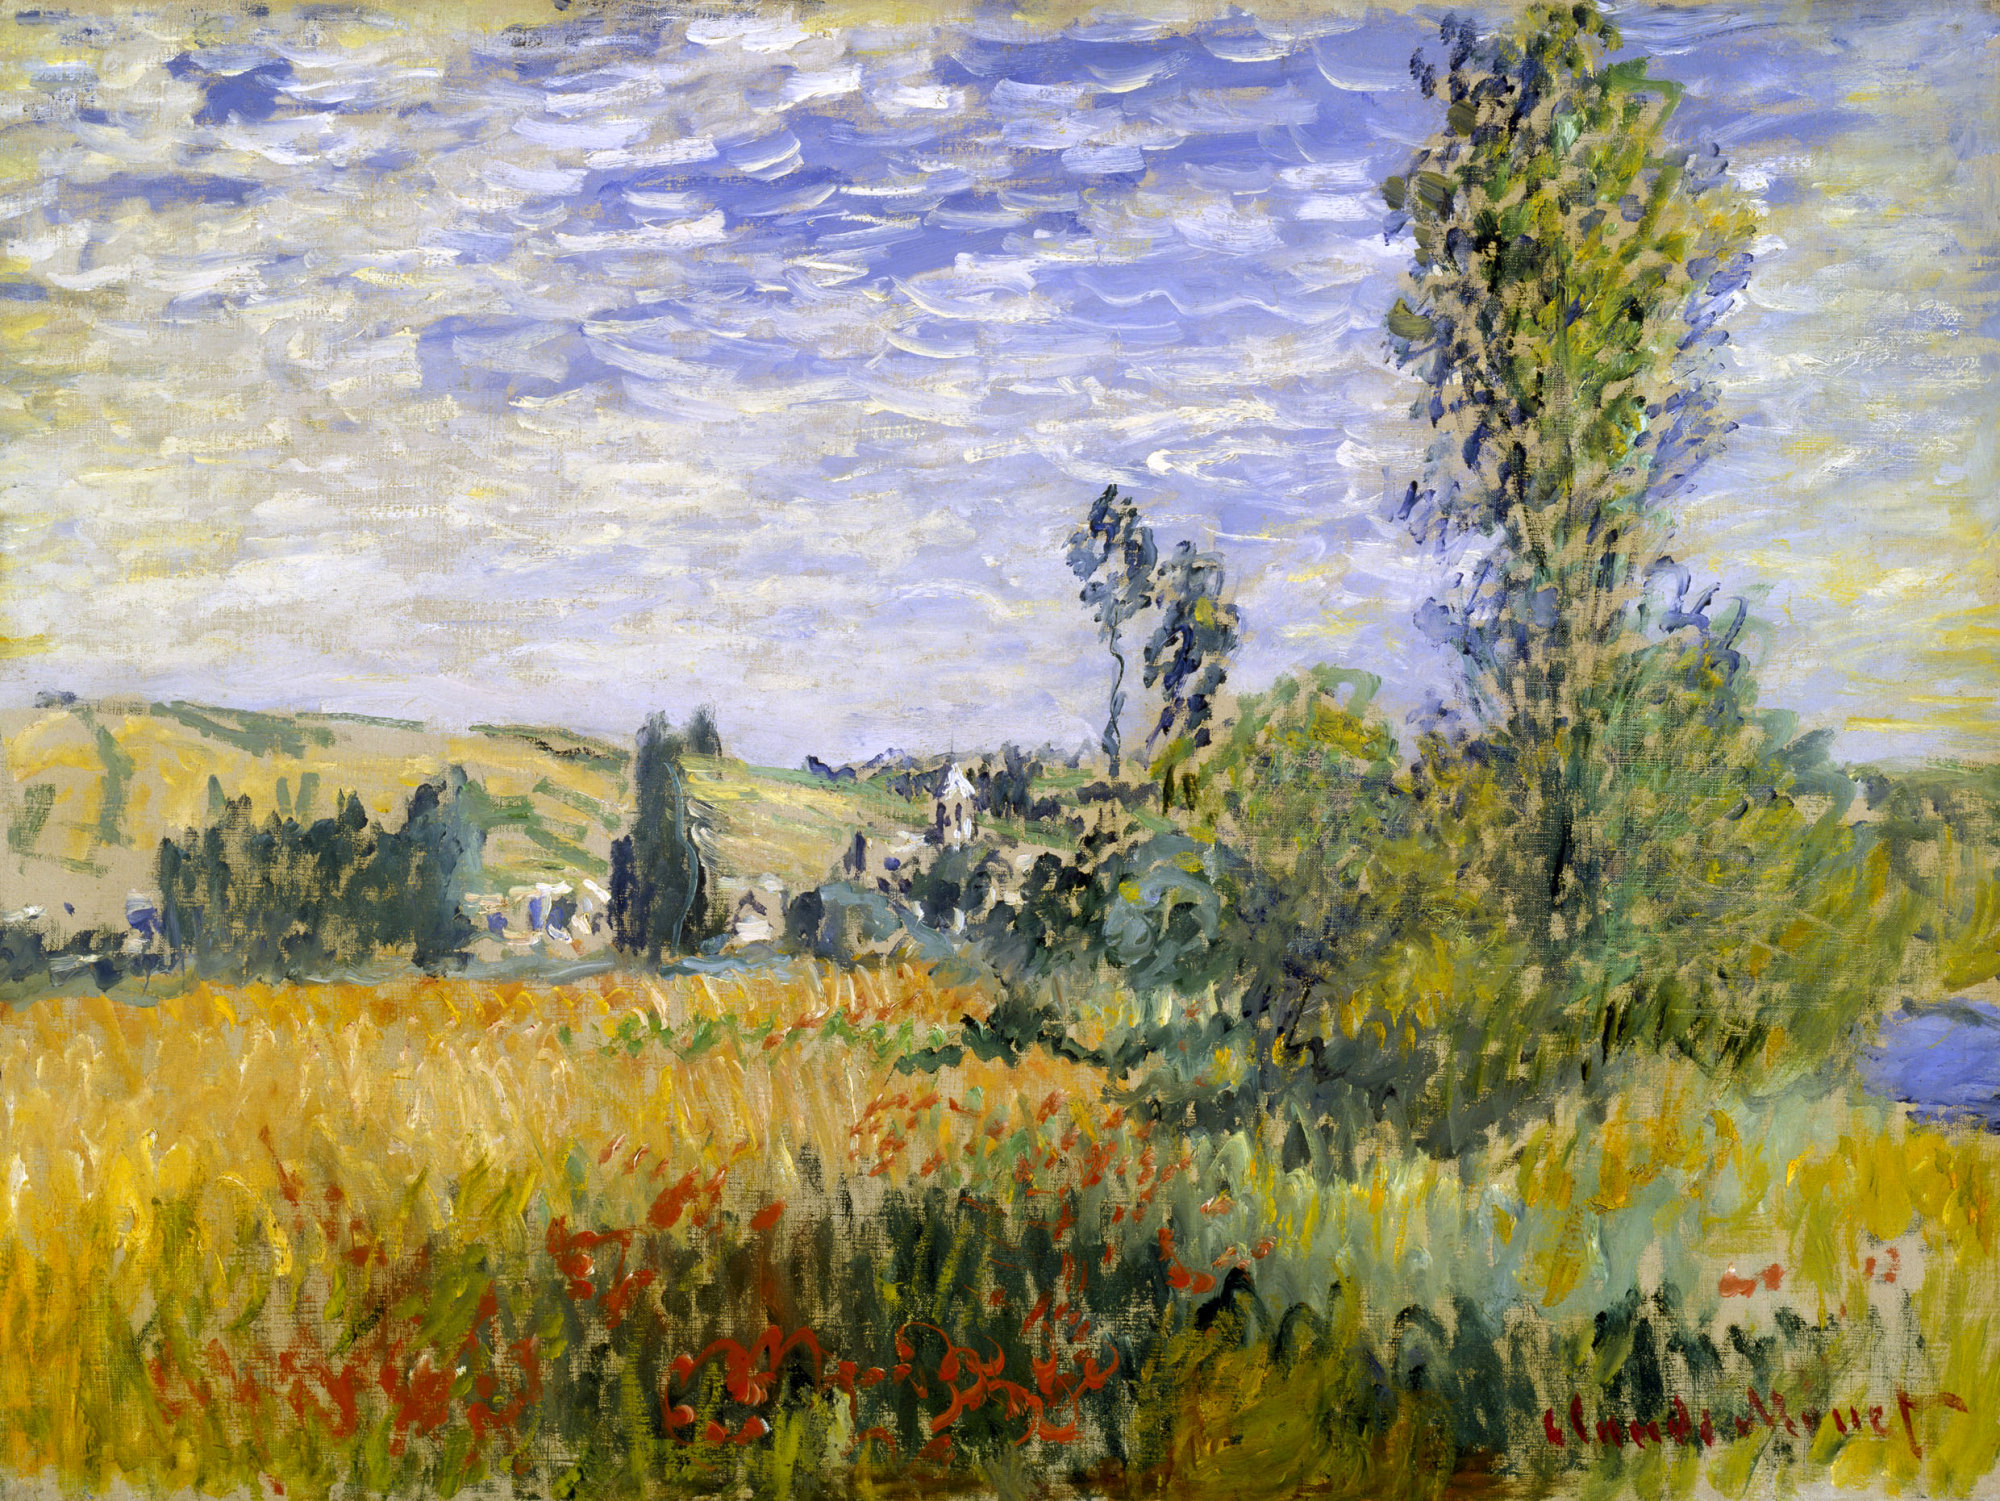 Vetheuil claude monet for Monet paintings images